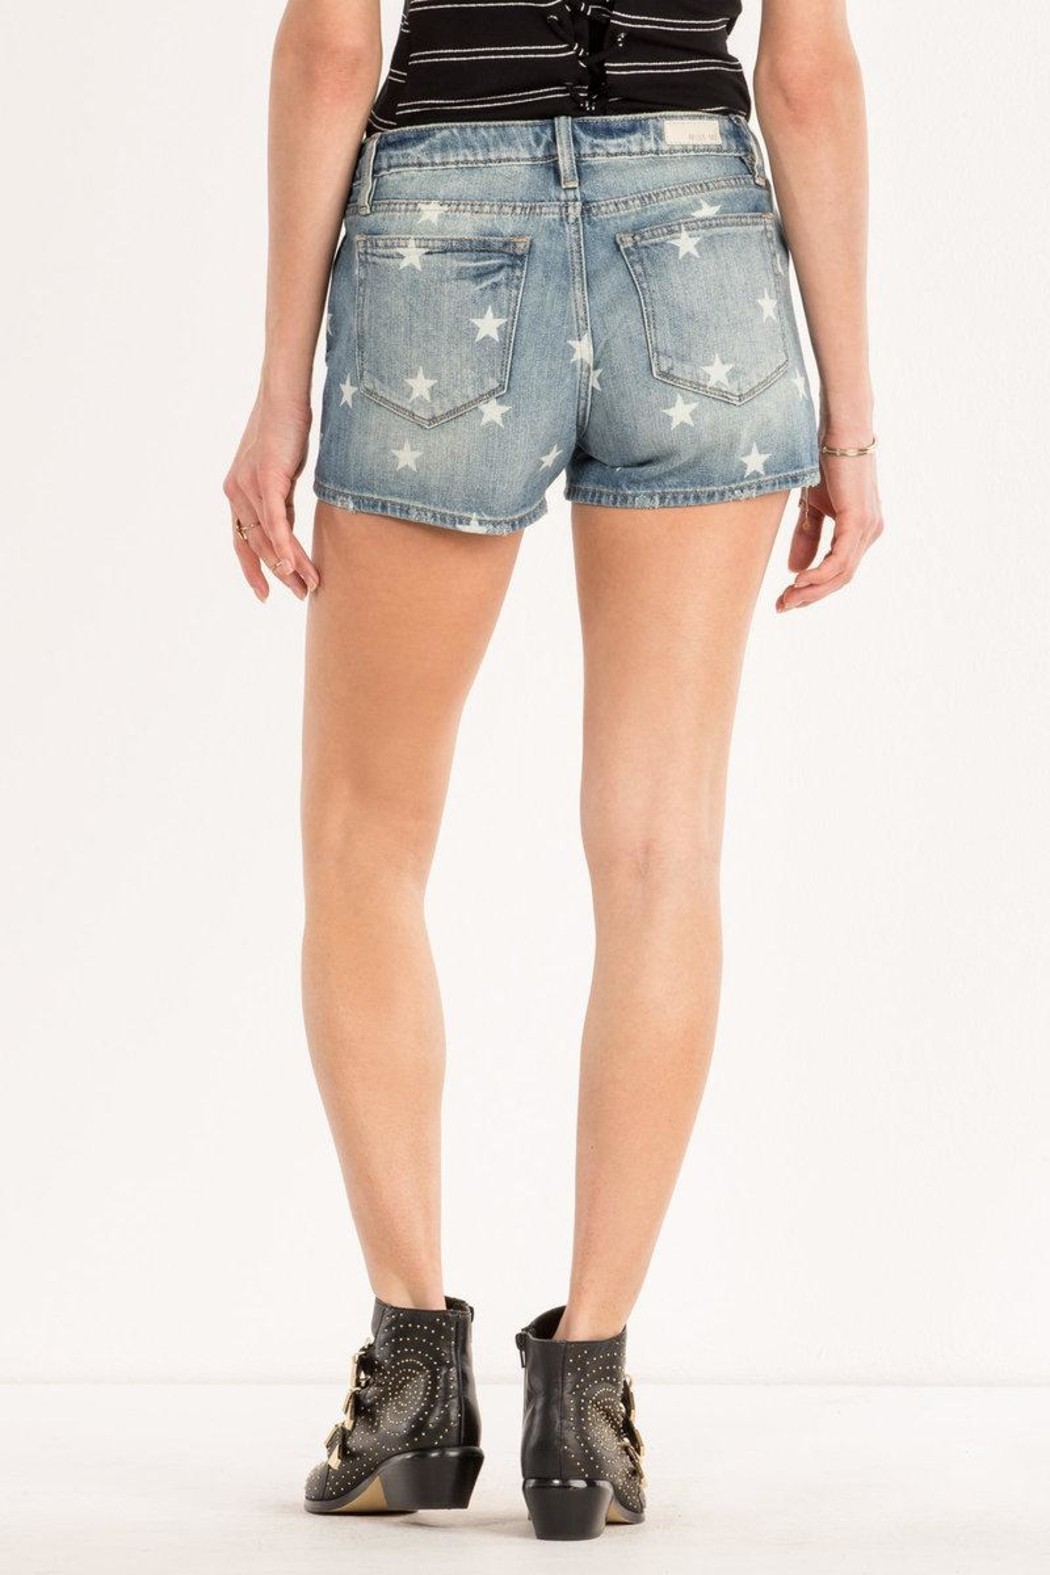 Miss Me Freedom Stars Midrise-Shorts - Side Cropped Image